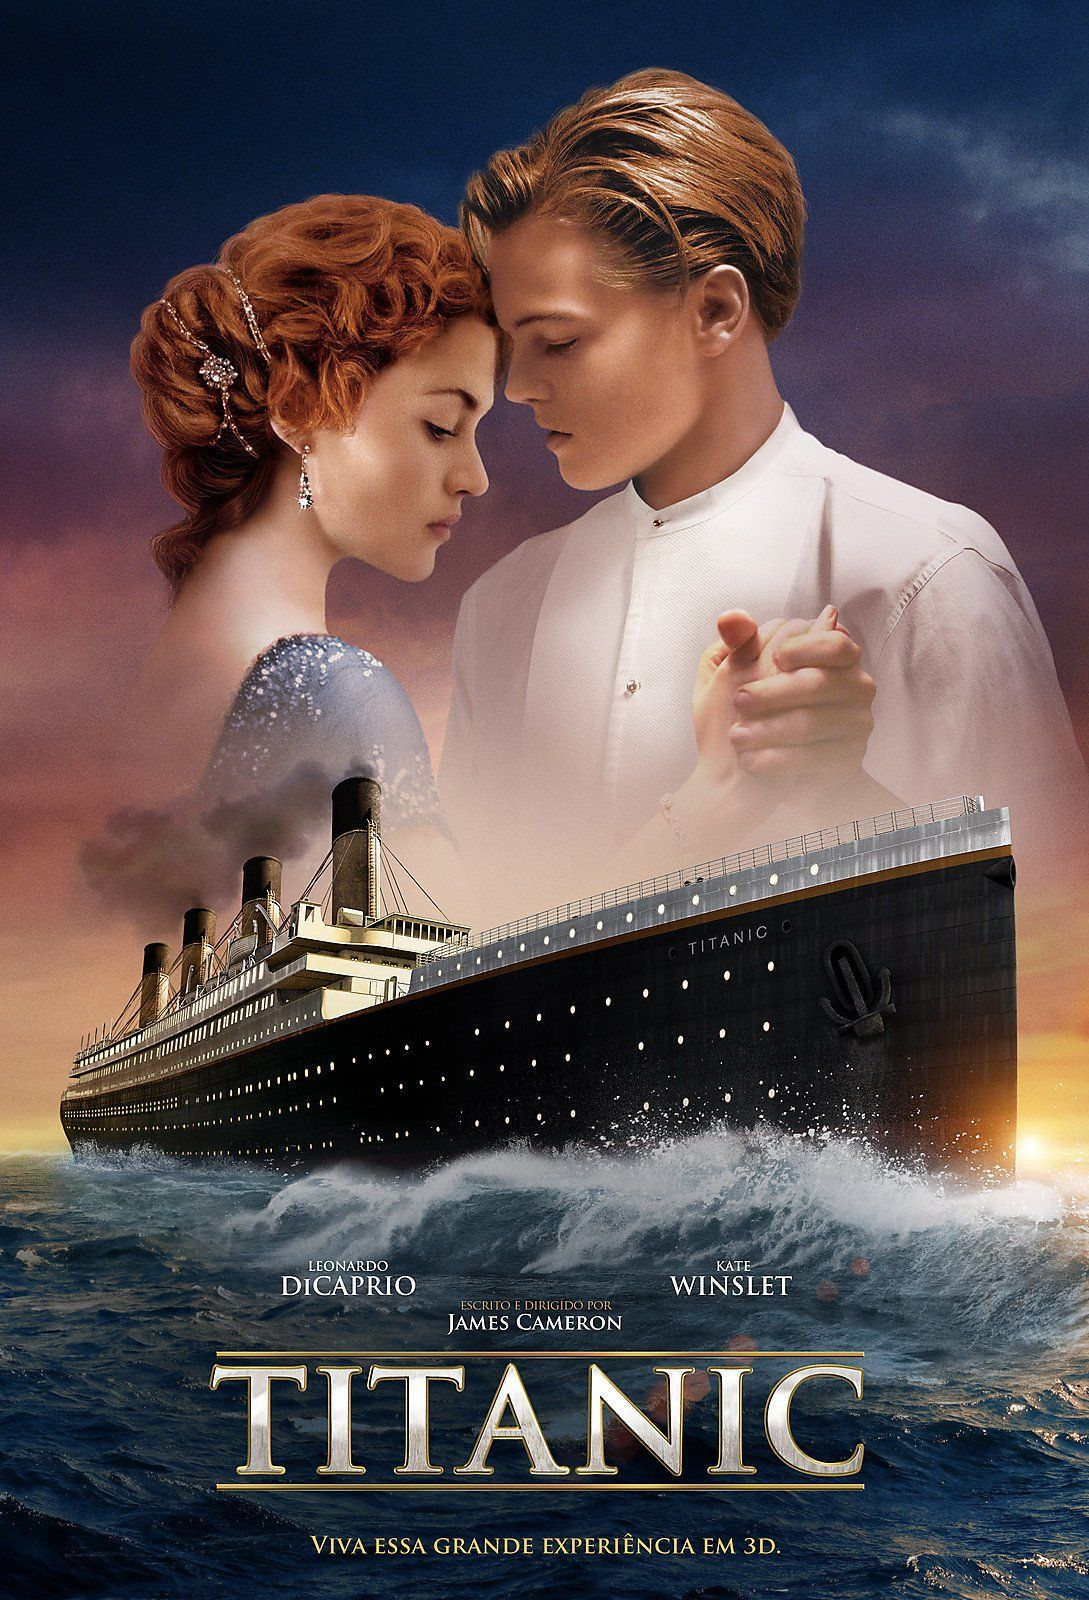 Titanic (1997) Hindi Dual Audio 720p BluRay [800MB]